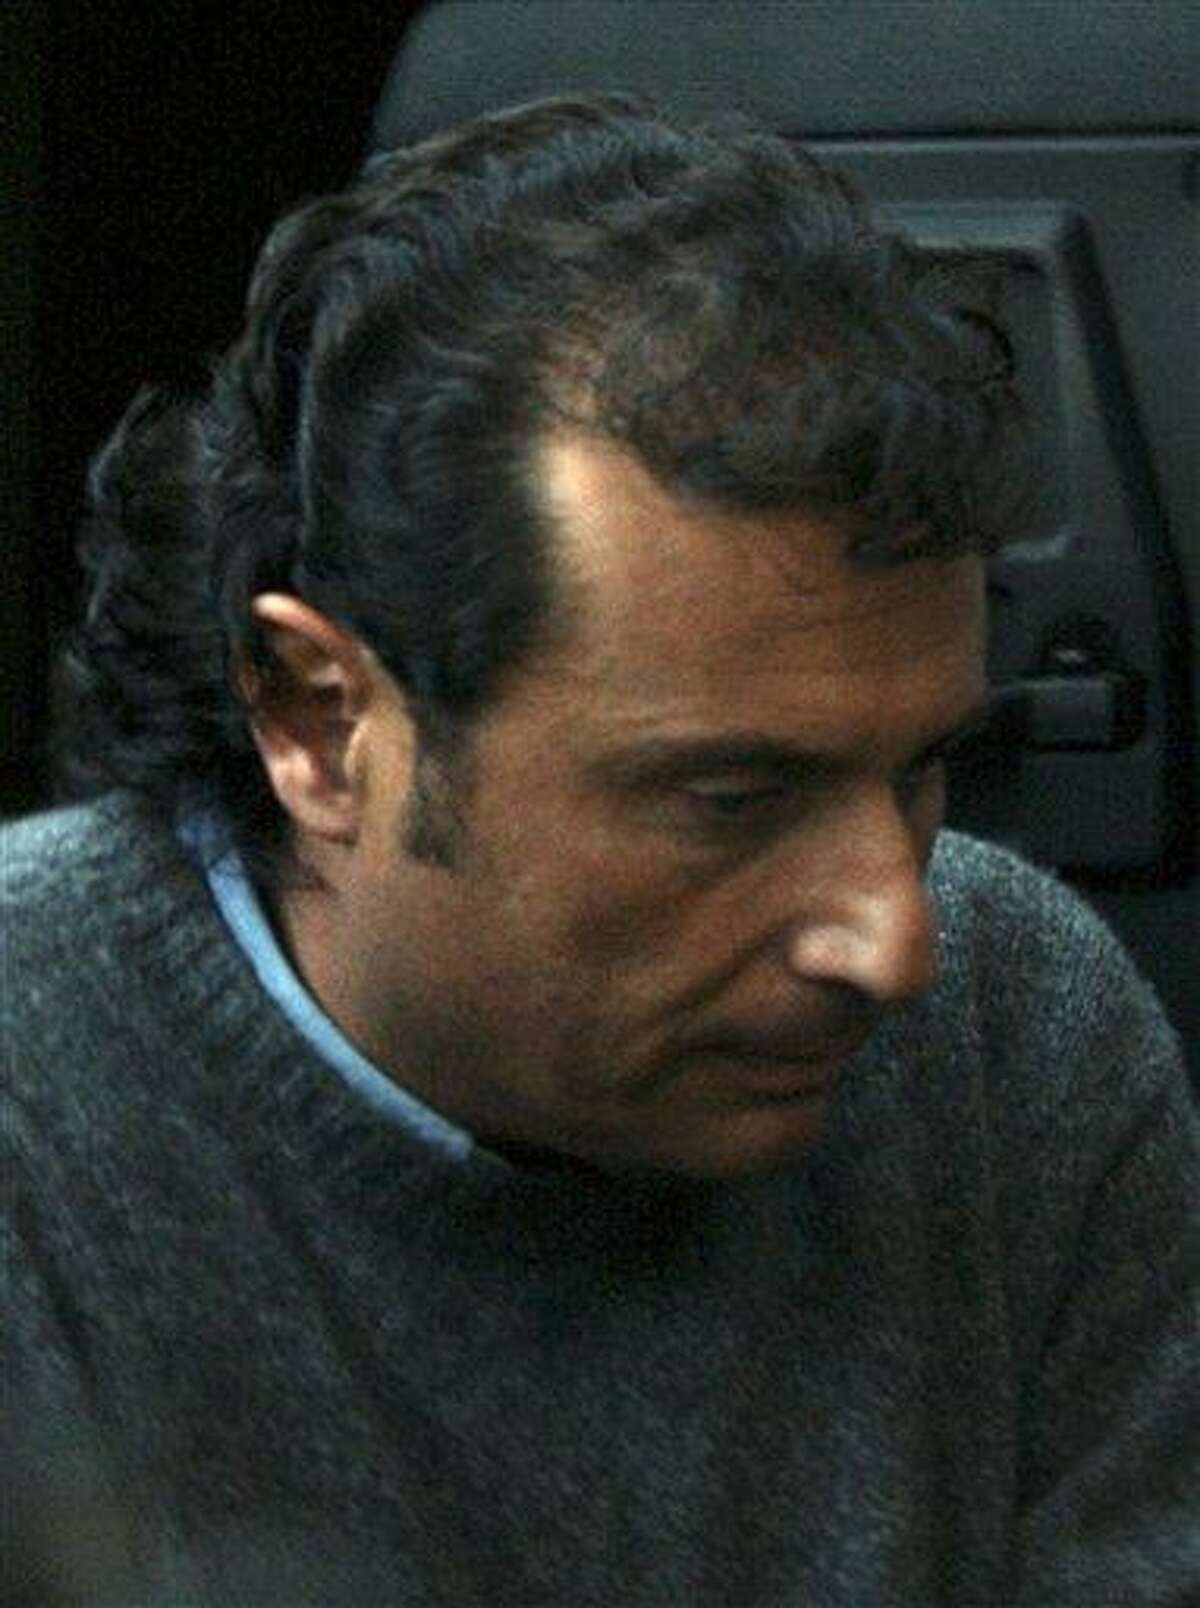 In this file photo from Tuesday, Francesco Schettino, captain of the Costa Concordia cruise ship that run aground off the tiny Island of Giglio last Friday, leaves the Grosseto court in Italy. Seamen have expressed almost universal outrage at Schettino, accused of manslaughter, causing a shipwreck and of abandoning his crippled cruise ship off Tuscany while passengers were still on board. Associated Press